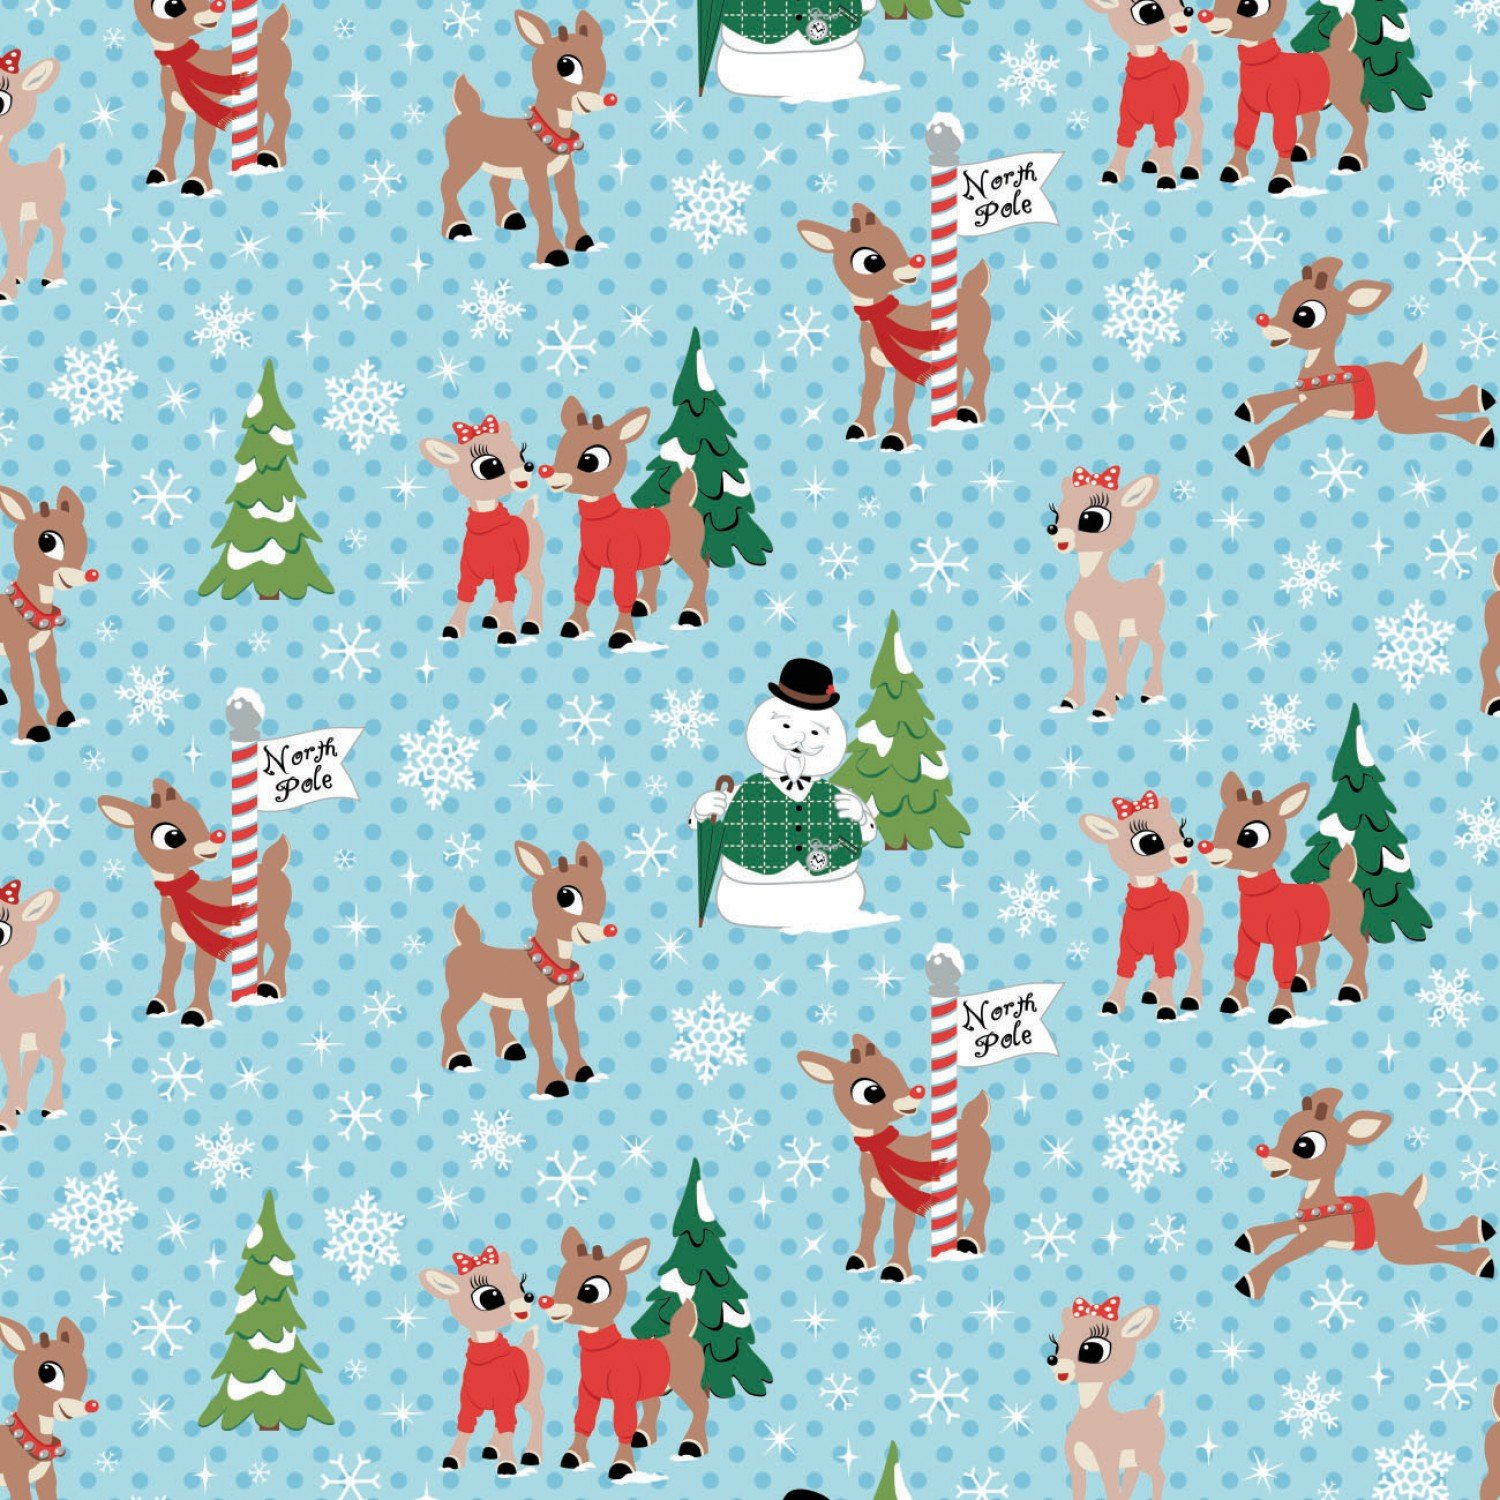 Christmas Rudolph & Friends North Pole Blue